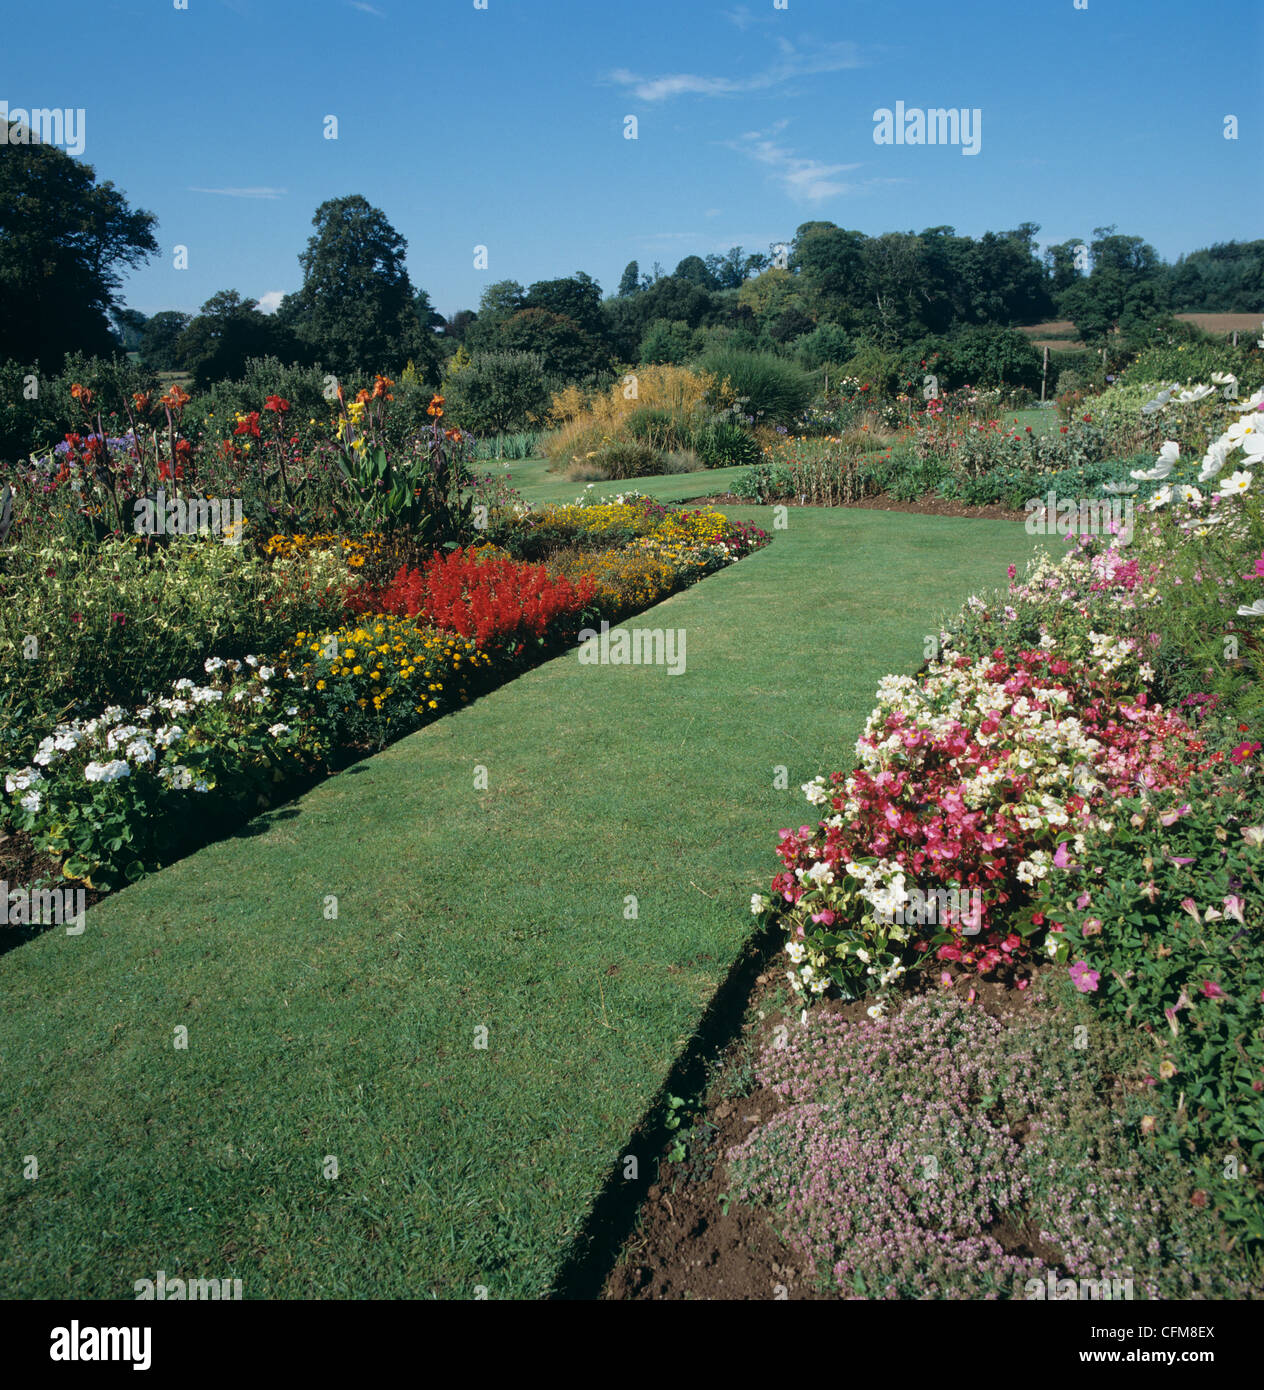 Lawn and herbaceous borders at Bicton College, Devon - Stock Image